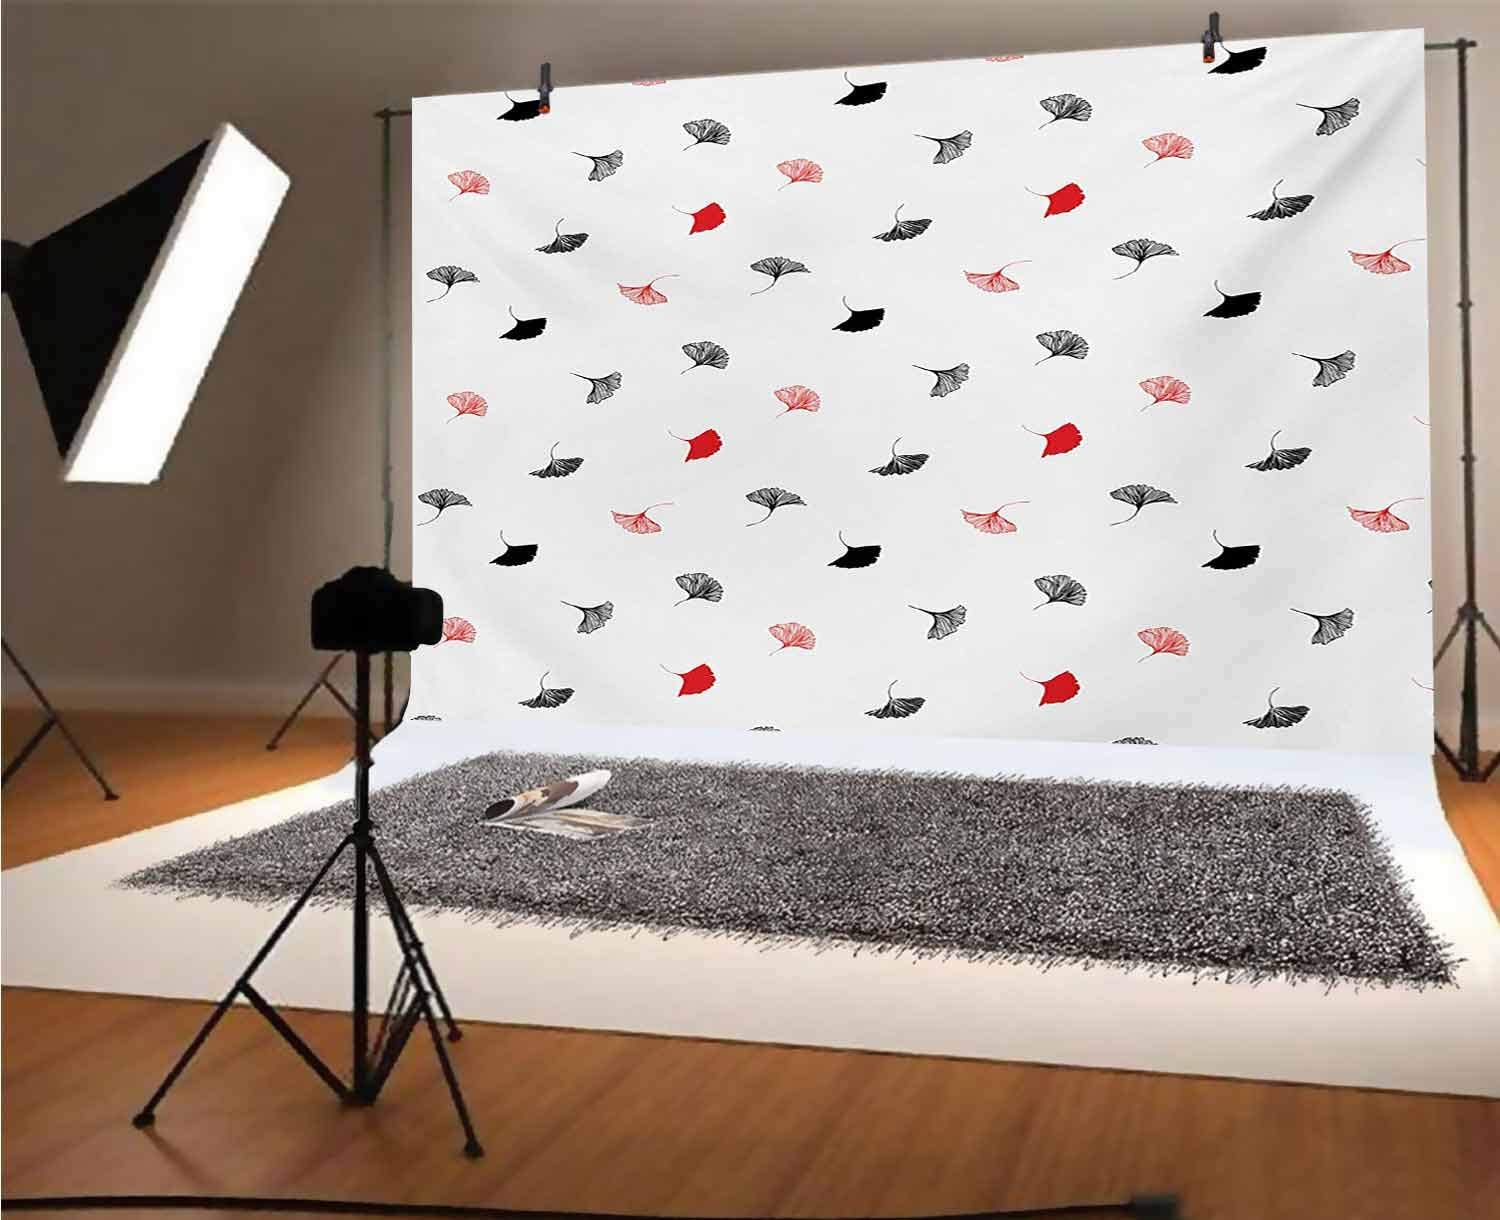 Leaf 8x6 FT Vinyl Photography Backdrop,Red and Black Ginkgo Leaves Scattered on White Background with Minimalist Style Background for Photo Backdrop Baby Newborn Photo Studio Props